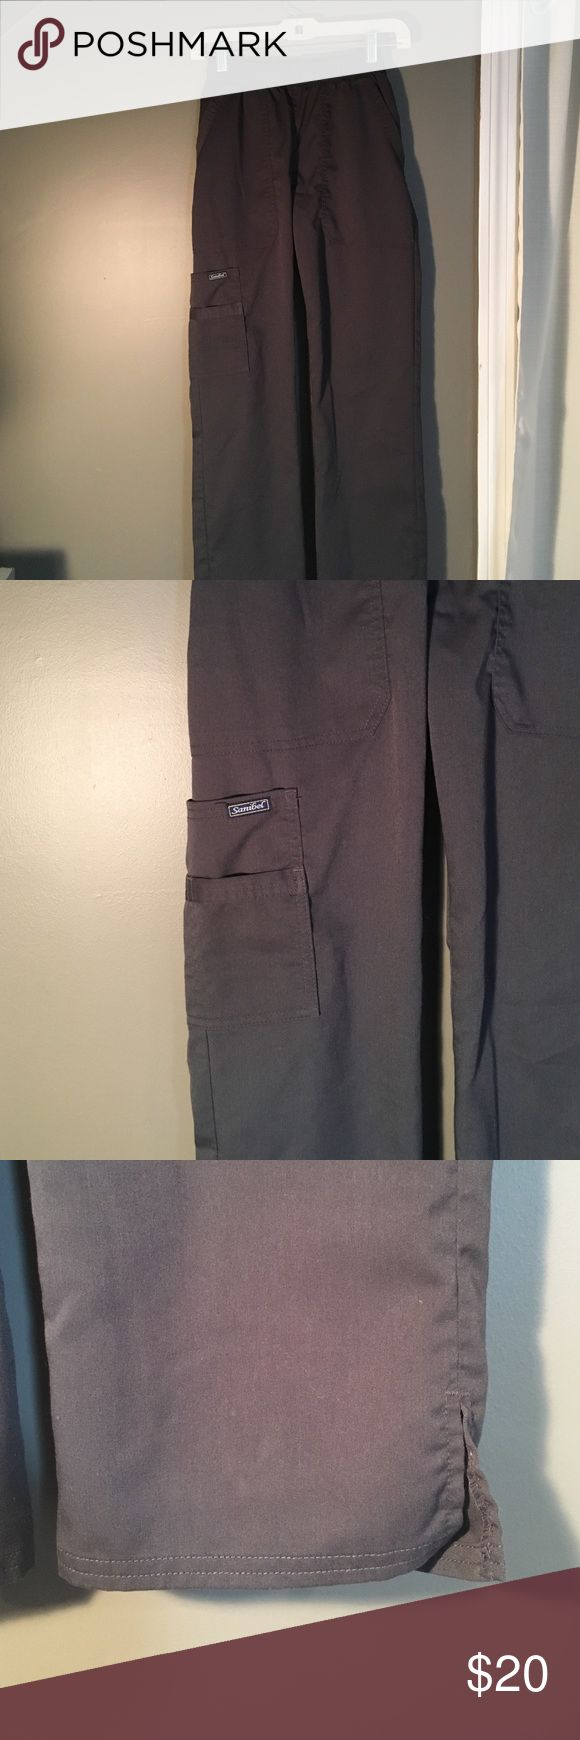 Grey scrub pants 💉SCRUB SALE THURSDAY💉 This picture does not do these pants justice, they are a really nice cut and dark grey color! They are just a little too long for me 😞 I've never worn these (as I wore the green ones also in my closet first and then realized neither would fit.) no rips/stains. Smoke free home. **my dogs are hypoallergenic** Pants